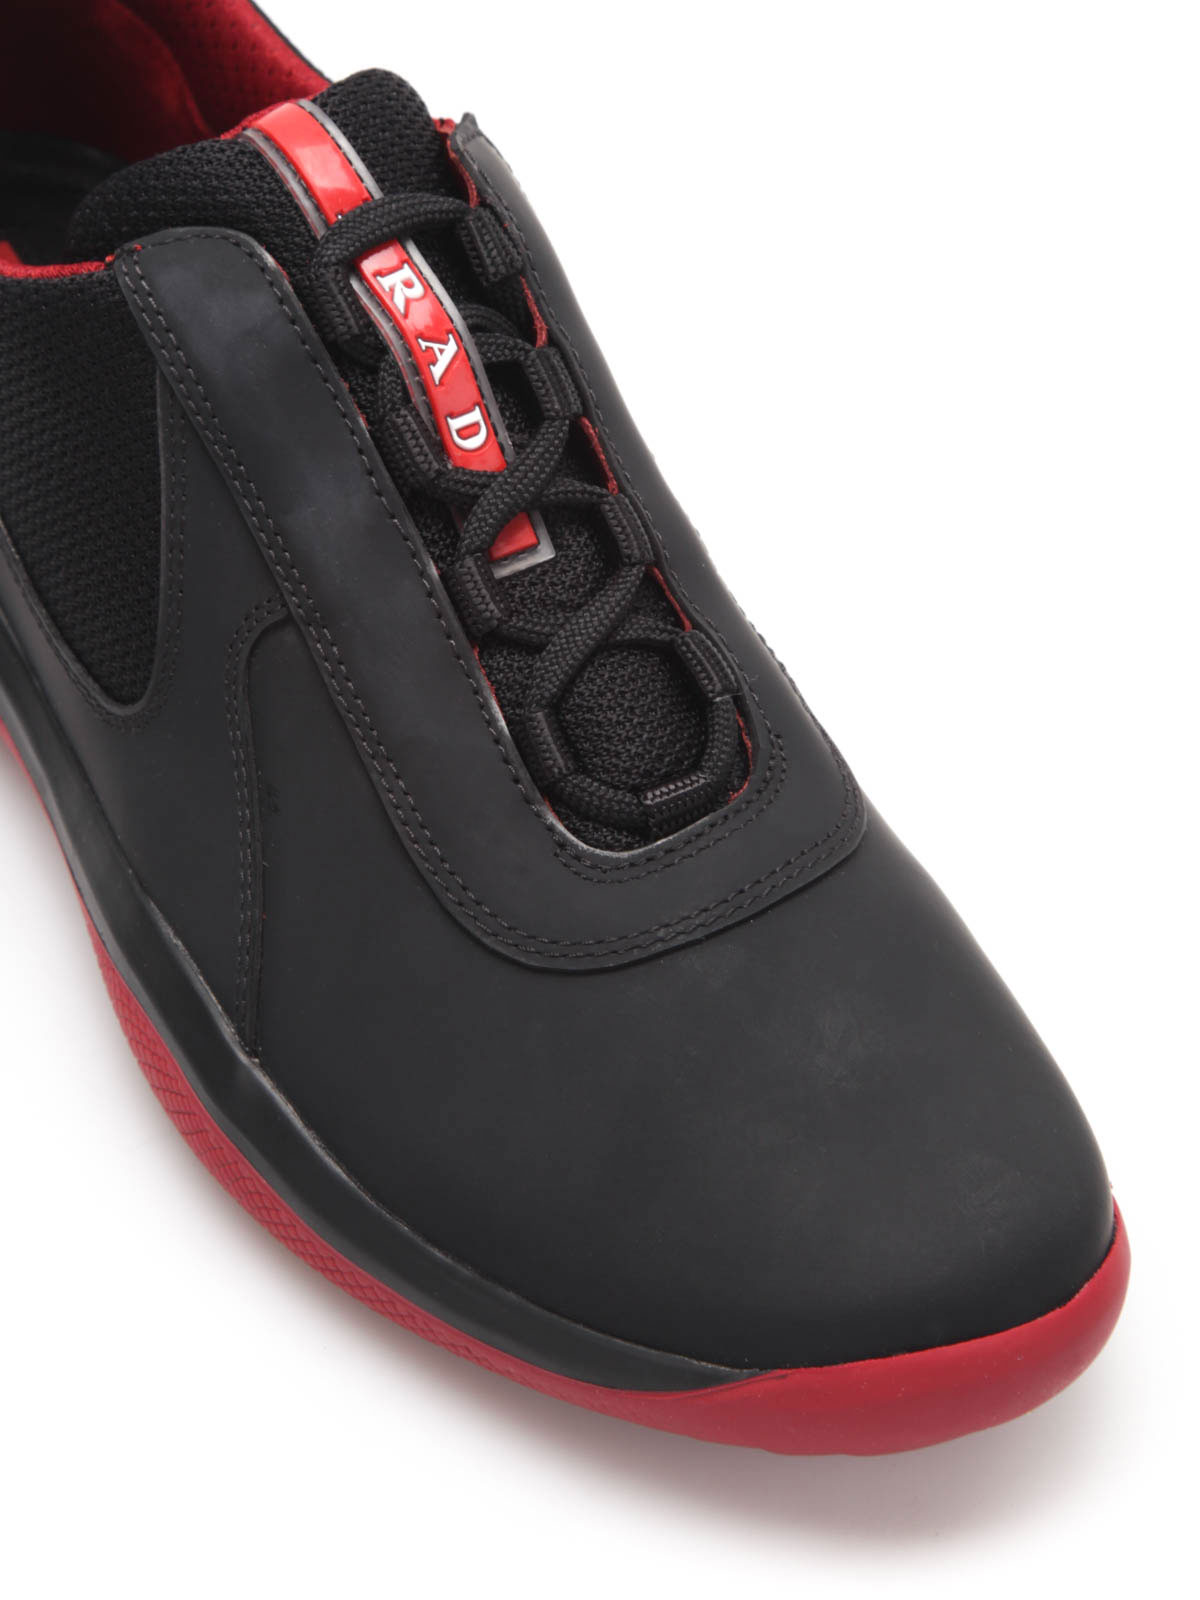 america 39 s cup trainers by prada linea rossa trainers ikrix. Black Bedroom Furniture Sets. Home Design Ideas